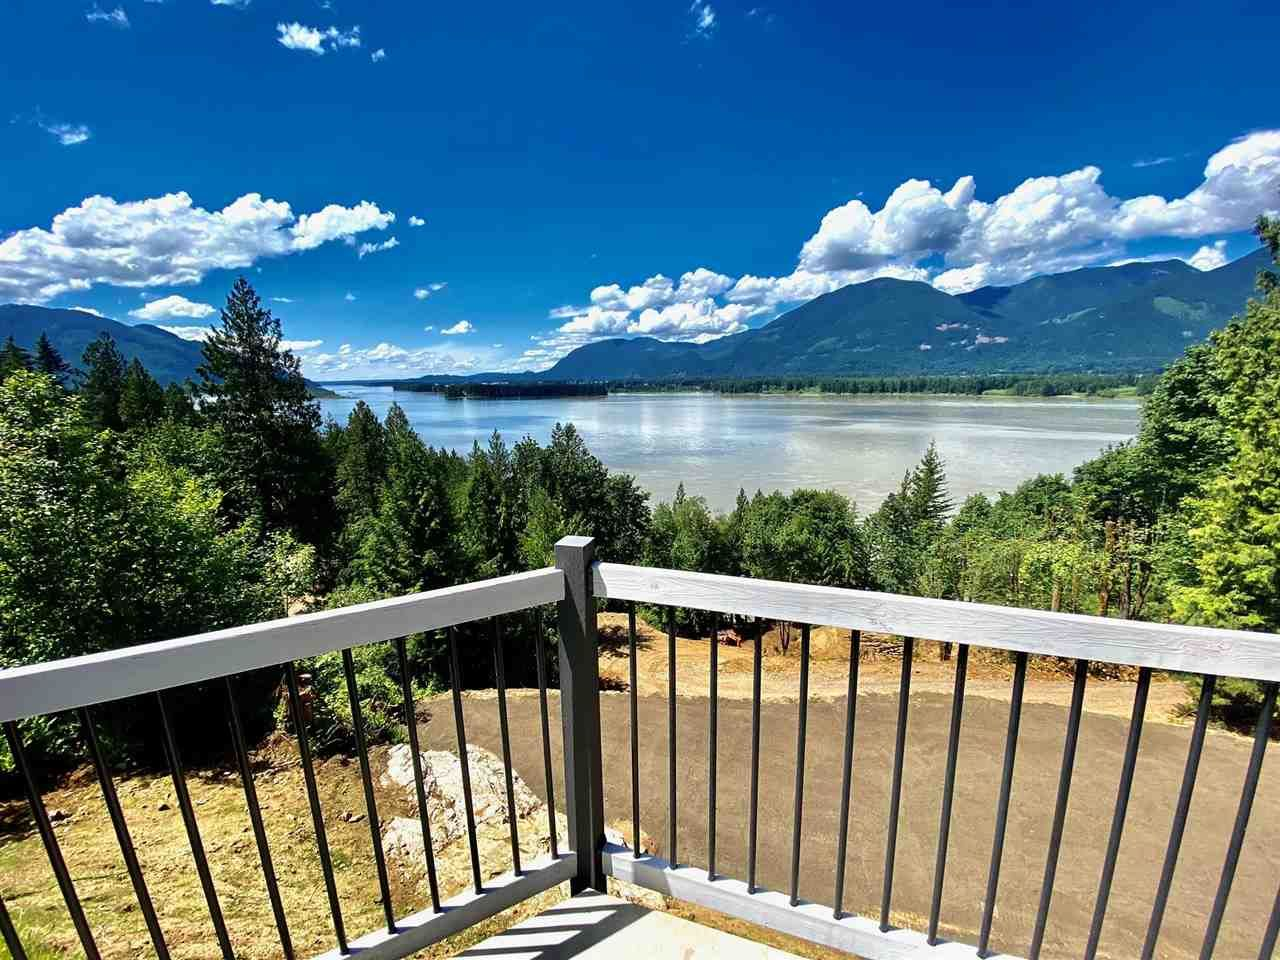 Main Photo: 43015 OLD ORCHARD Road in Chilliwack: Chilliwack Mountain House for sale : MLS®# R2592142